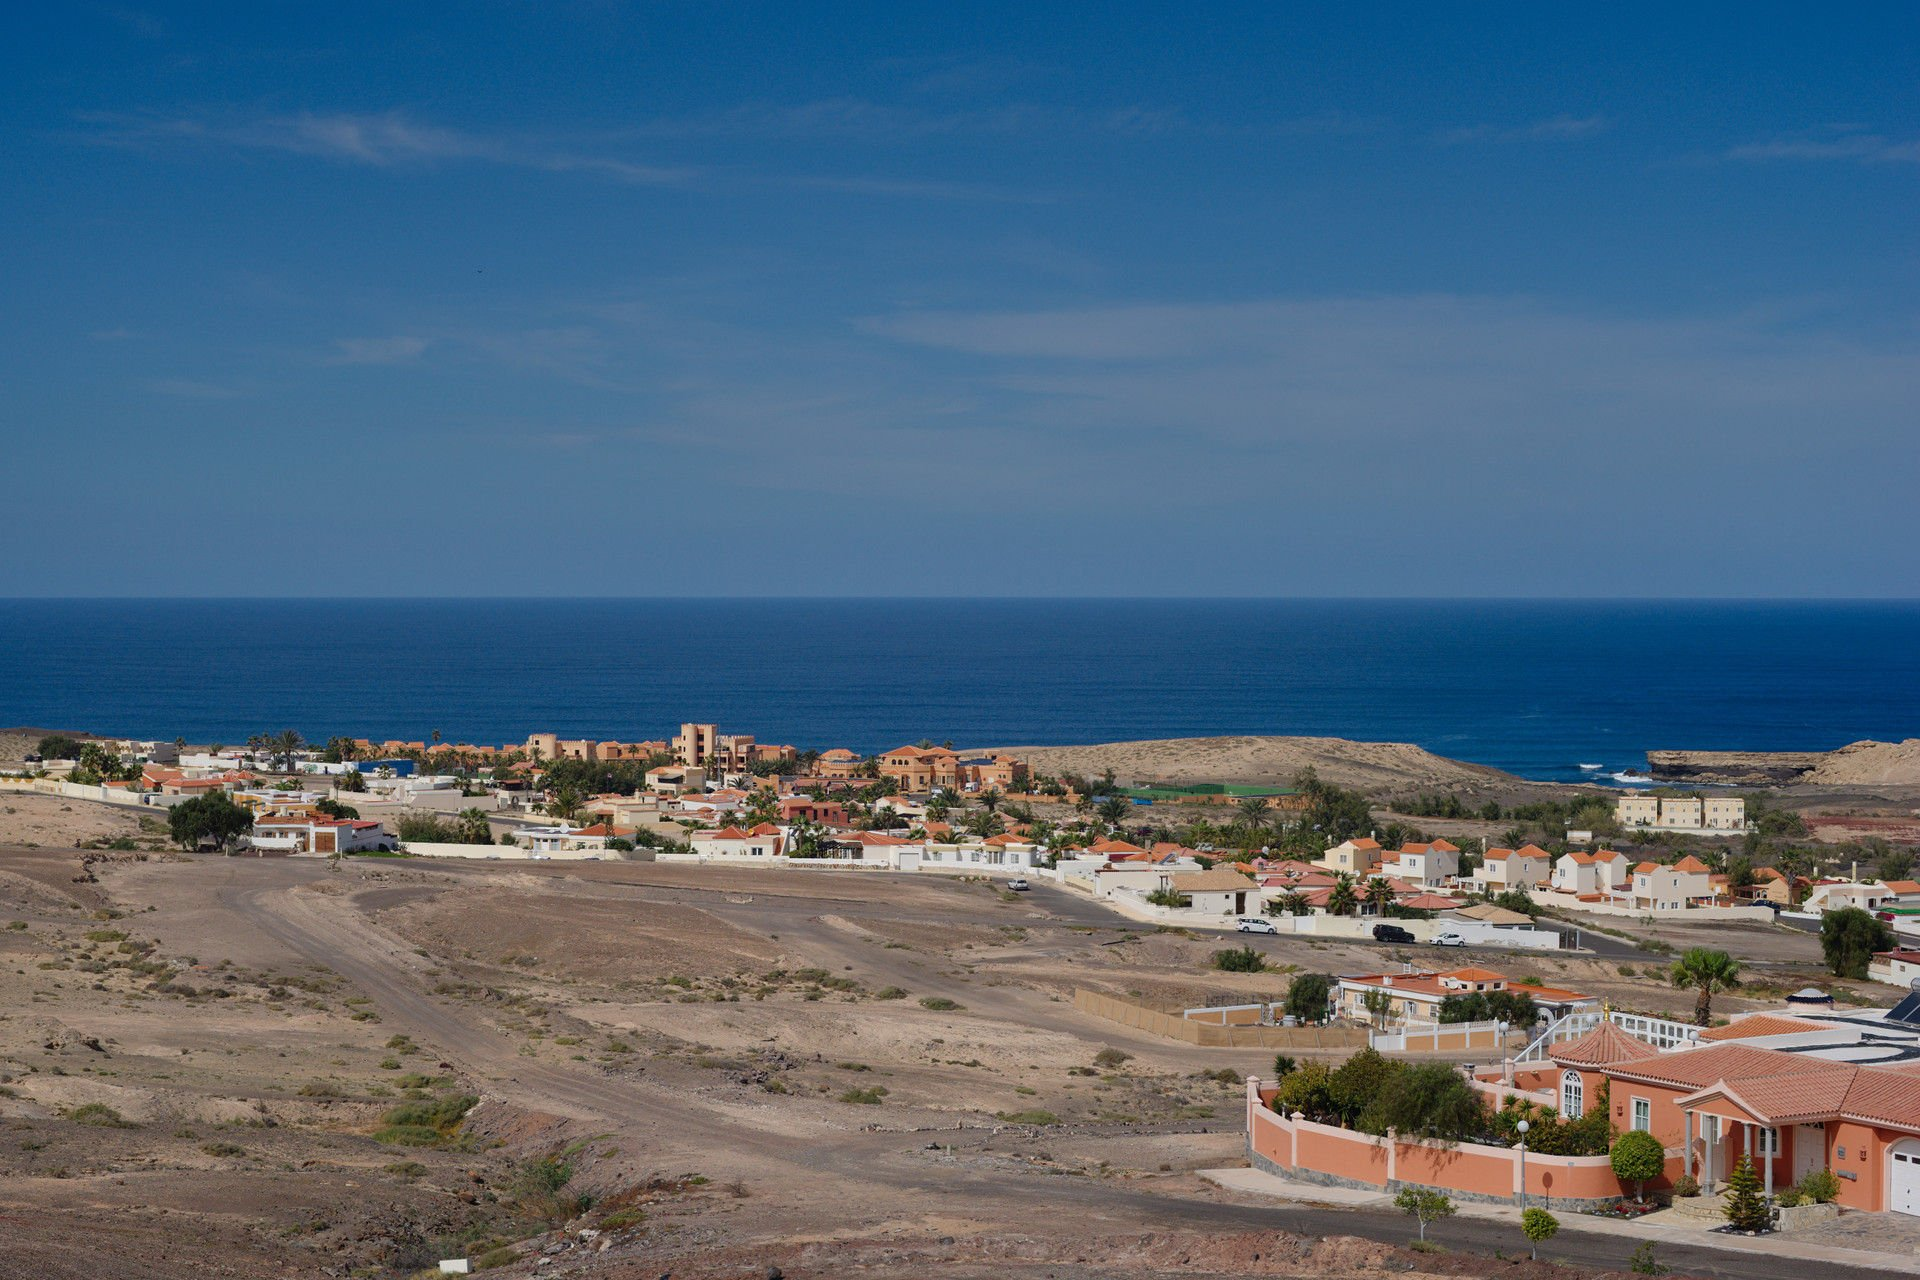 View of La Pared town, Fuerteventura